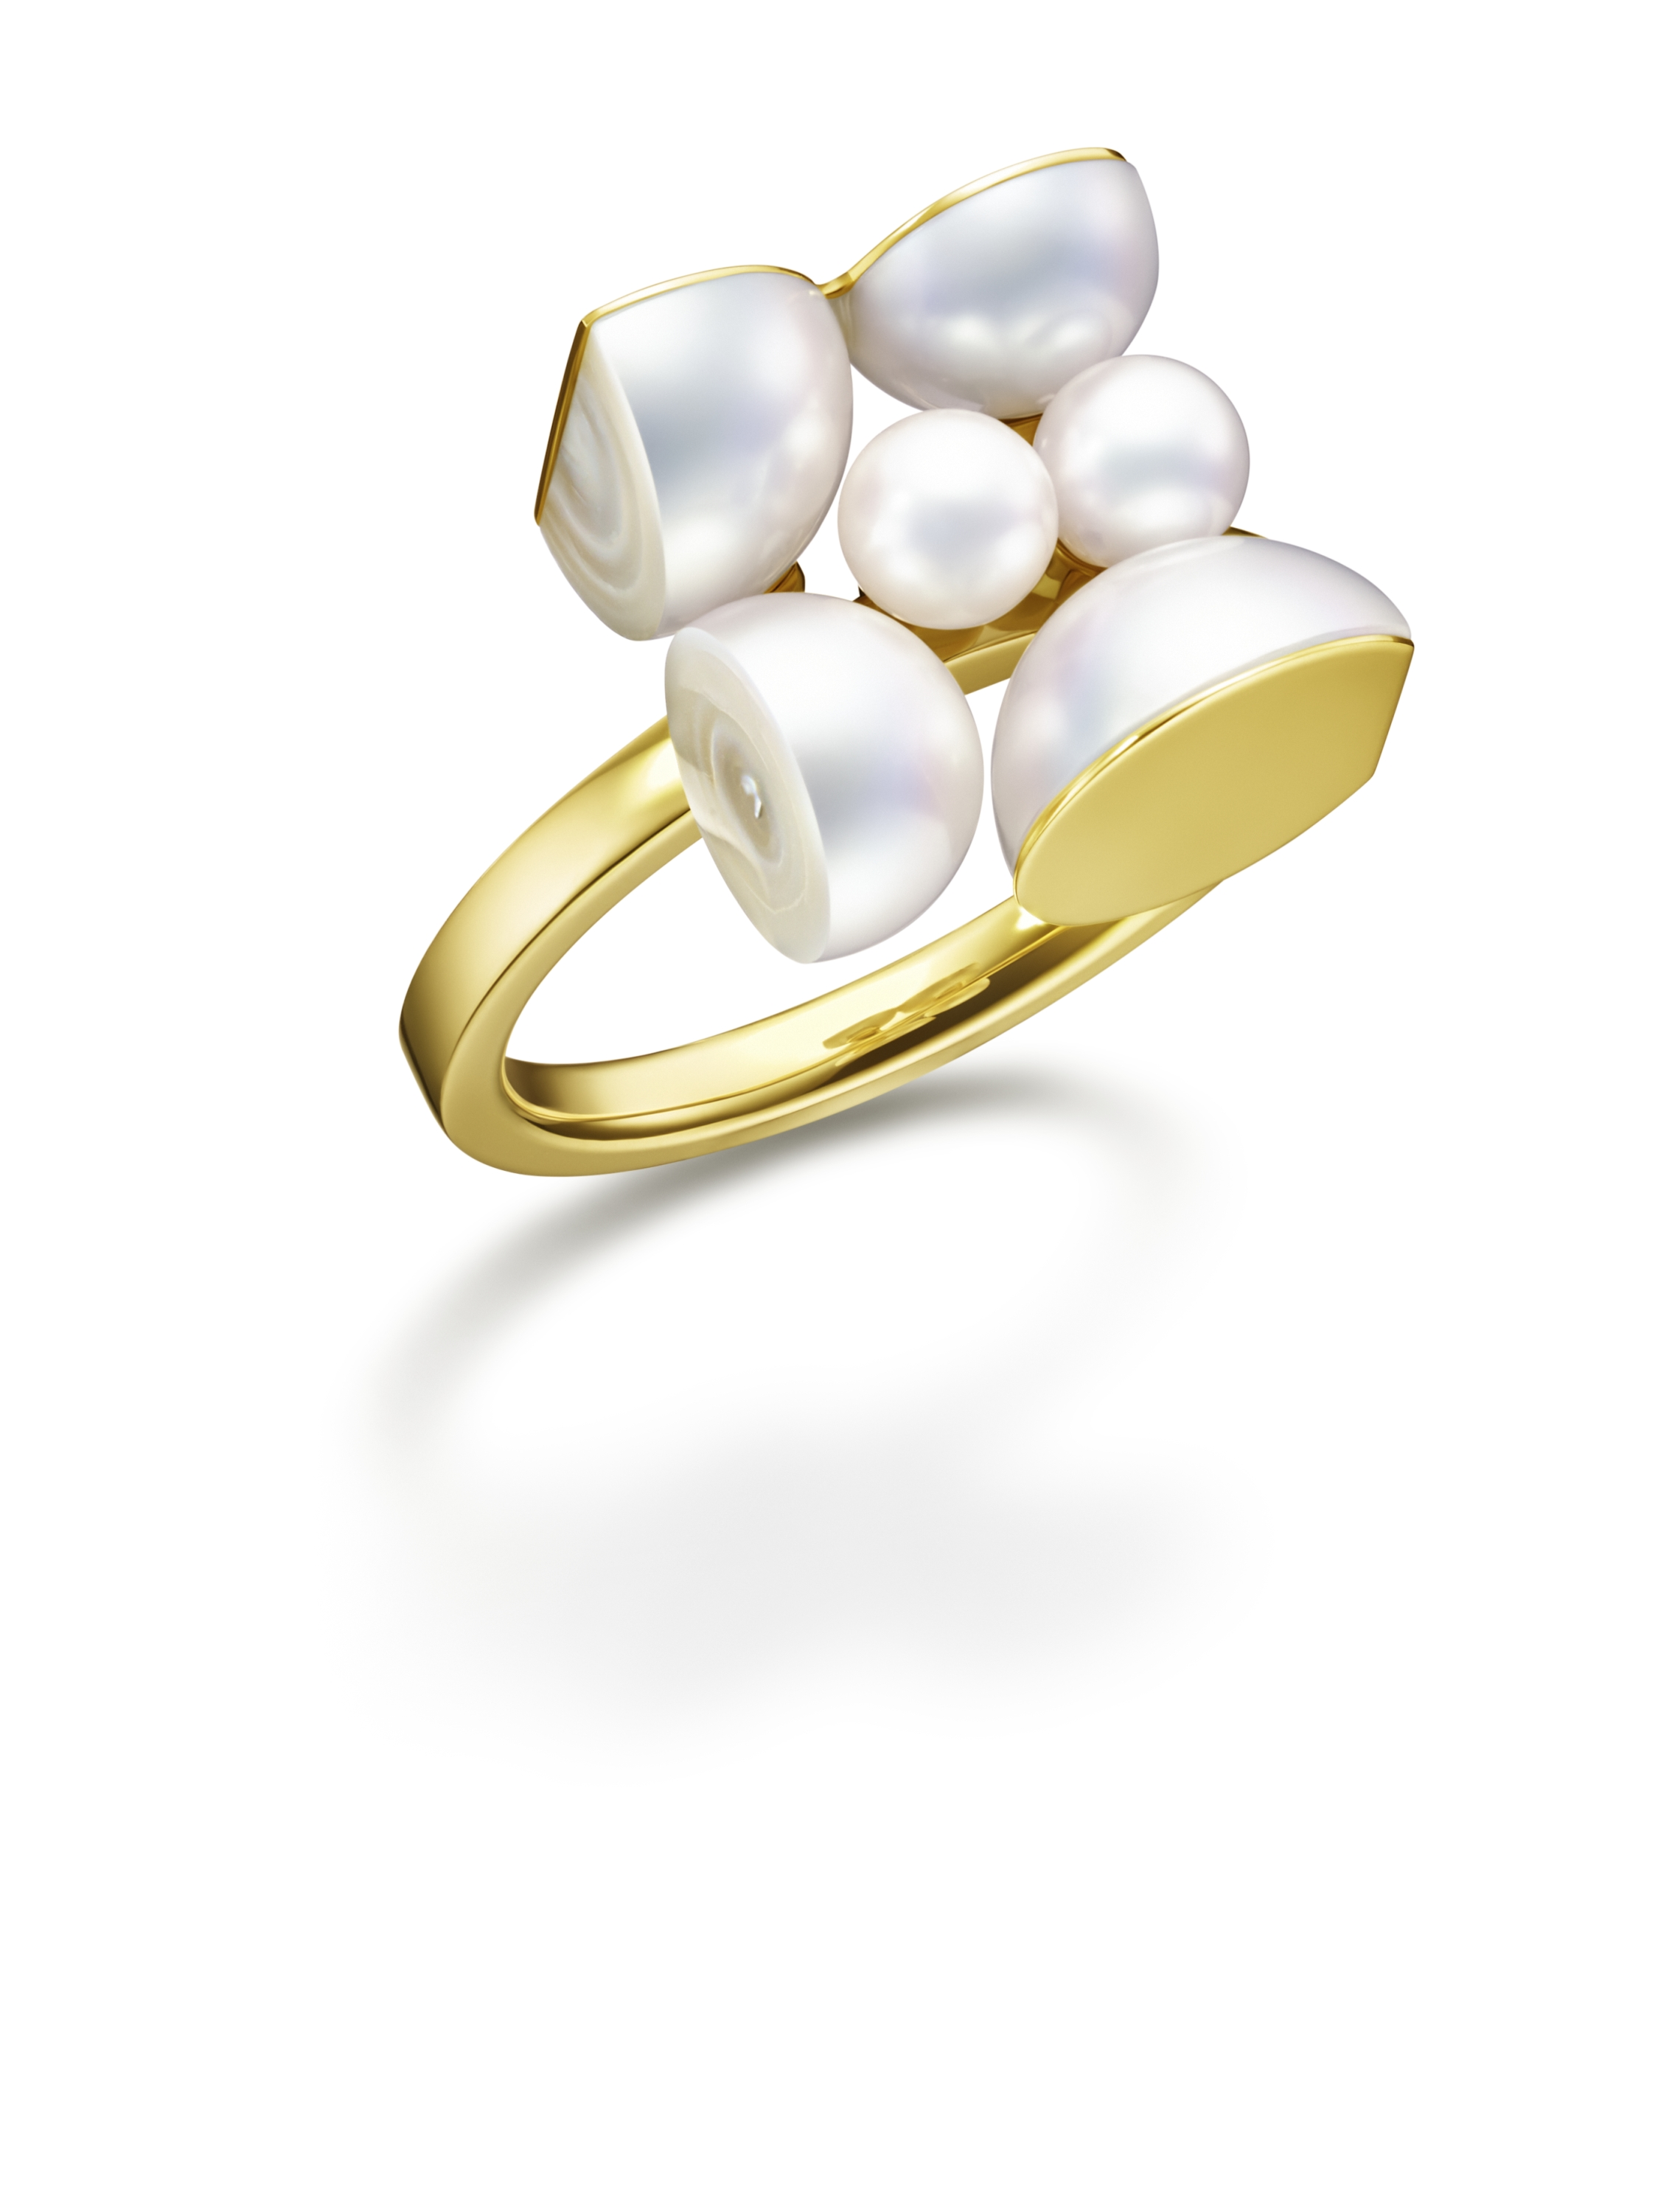 Segment Ring M/G Tasaki (Image courtesy of Melanie Georgacopoulos)